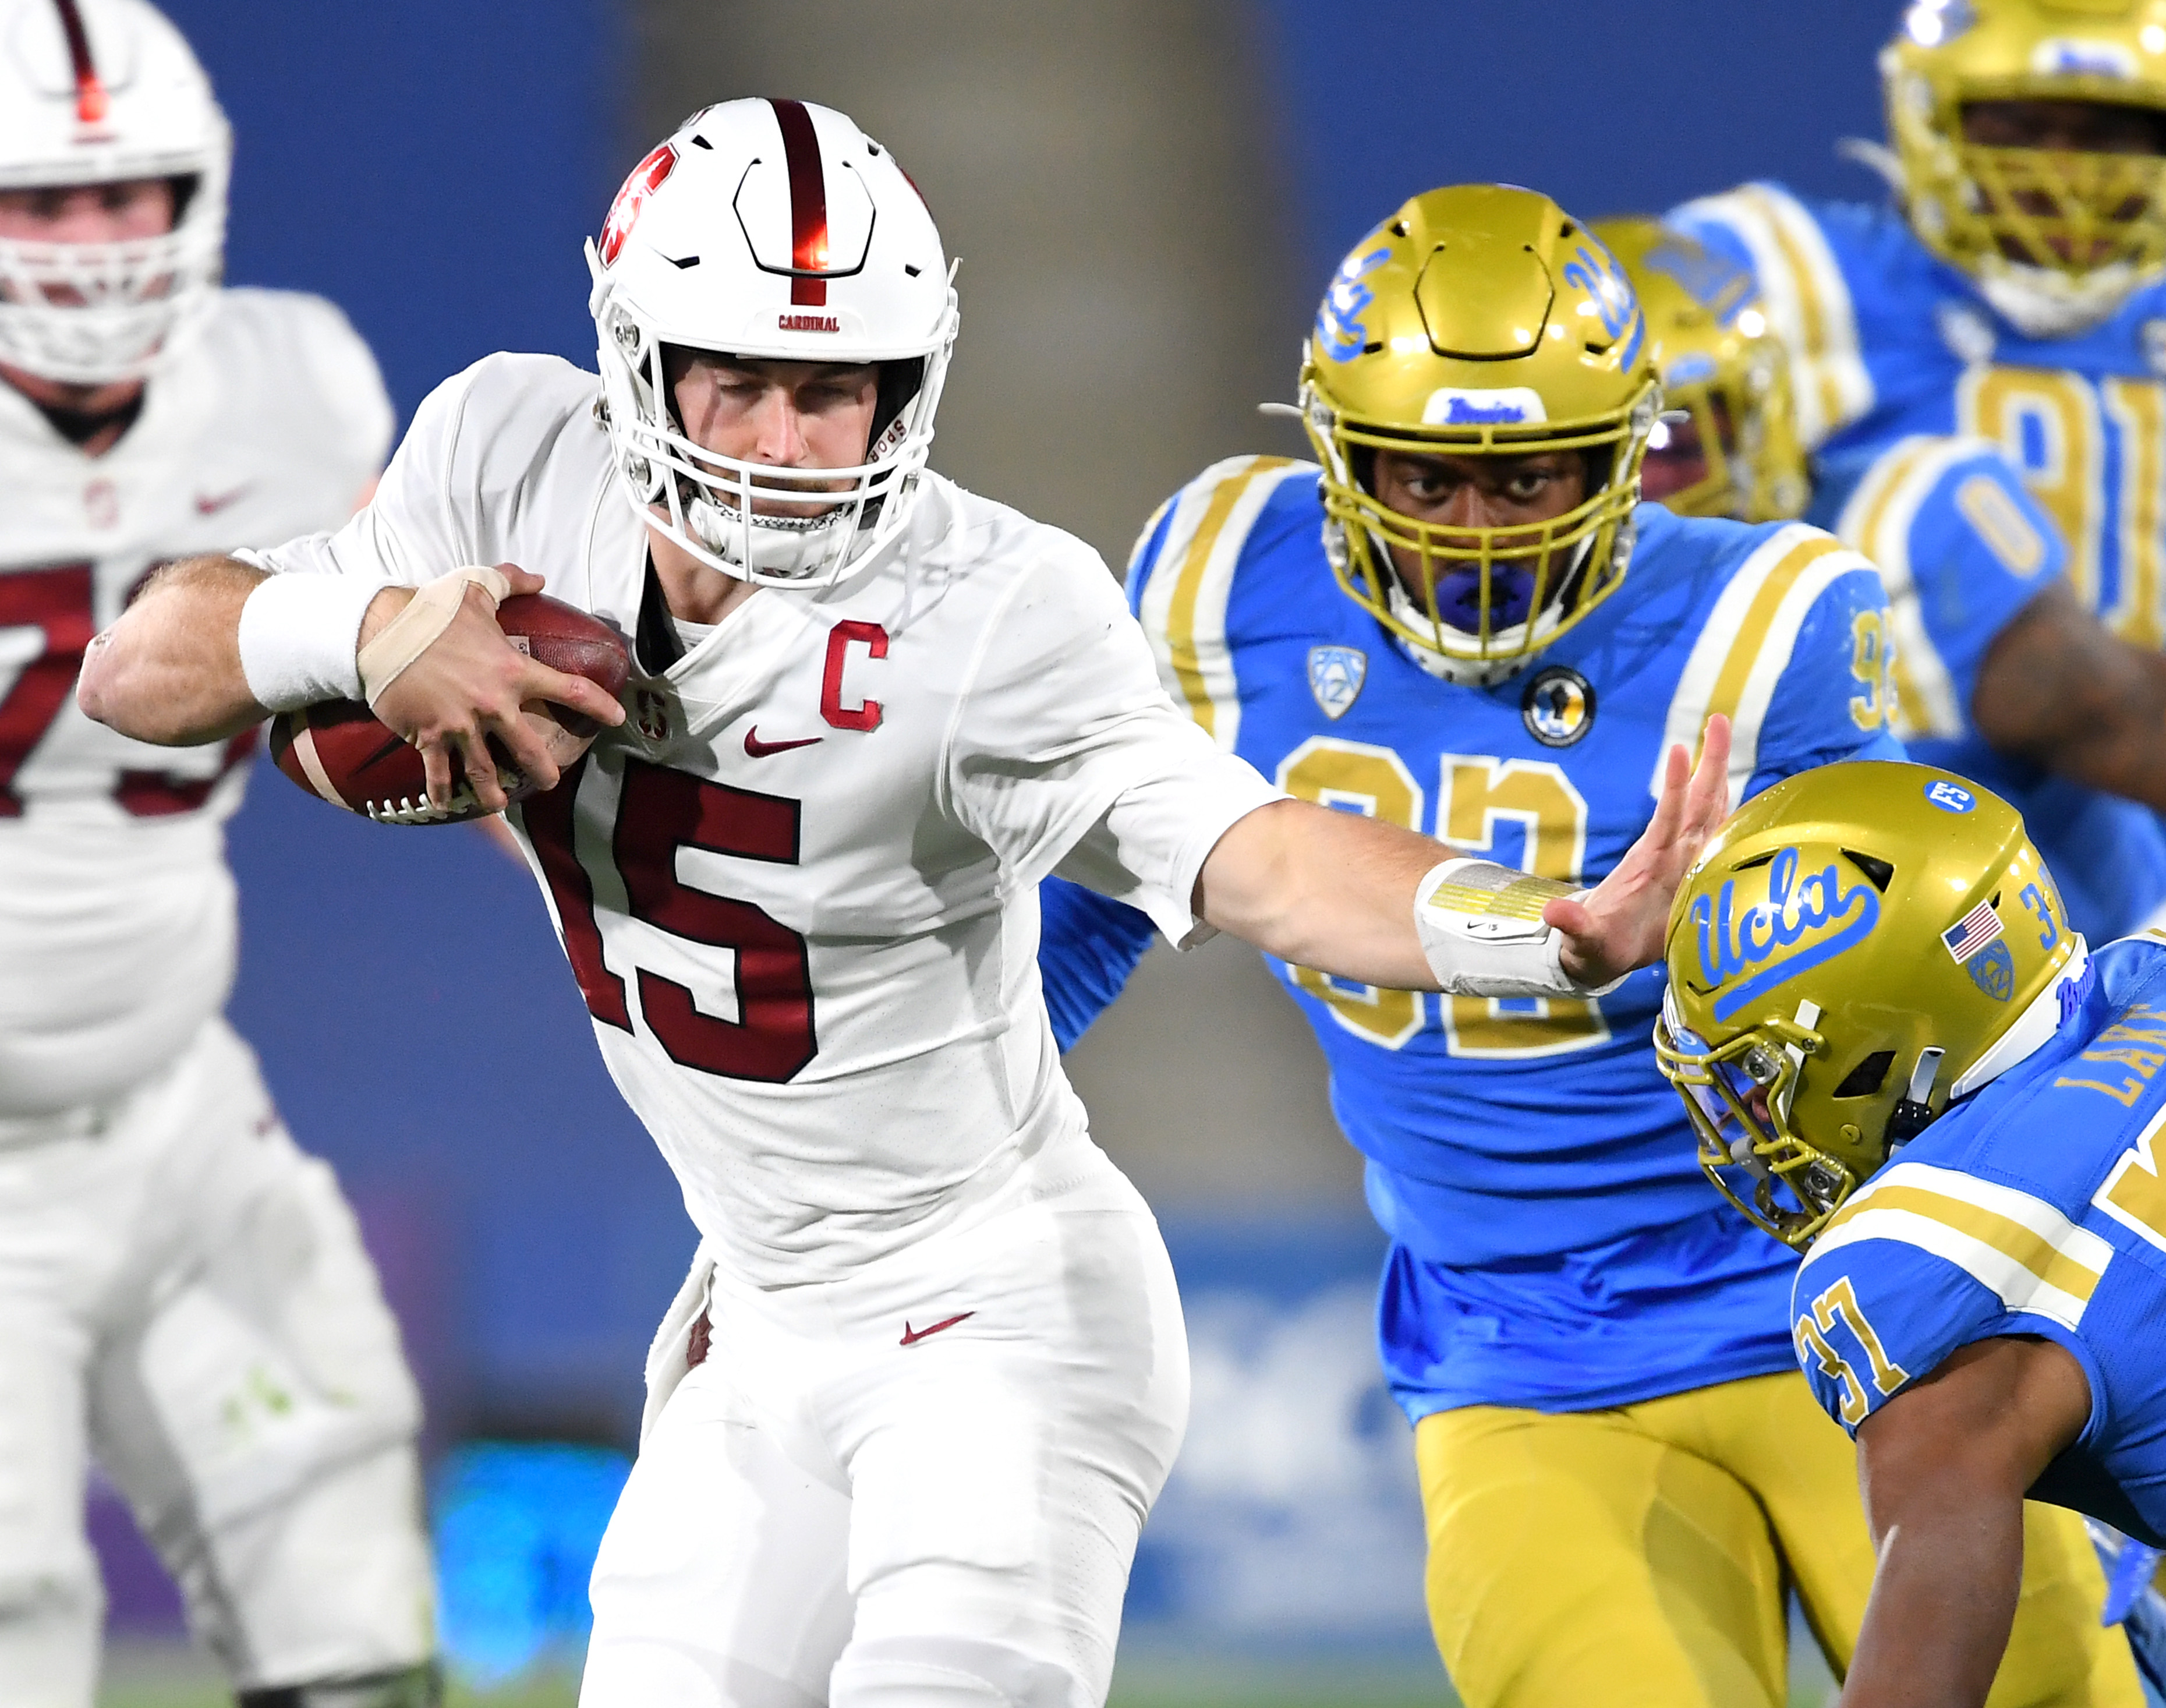 Bruins defensive back Quentin Lake misses a tackle on Stanford Cardinal quarterback Davis Mills as he scrambles for a first down in the first half of the game at the Rose Bowl.